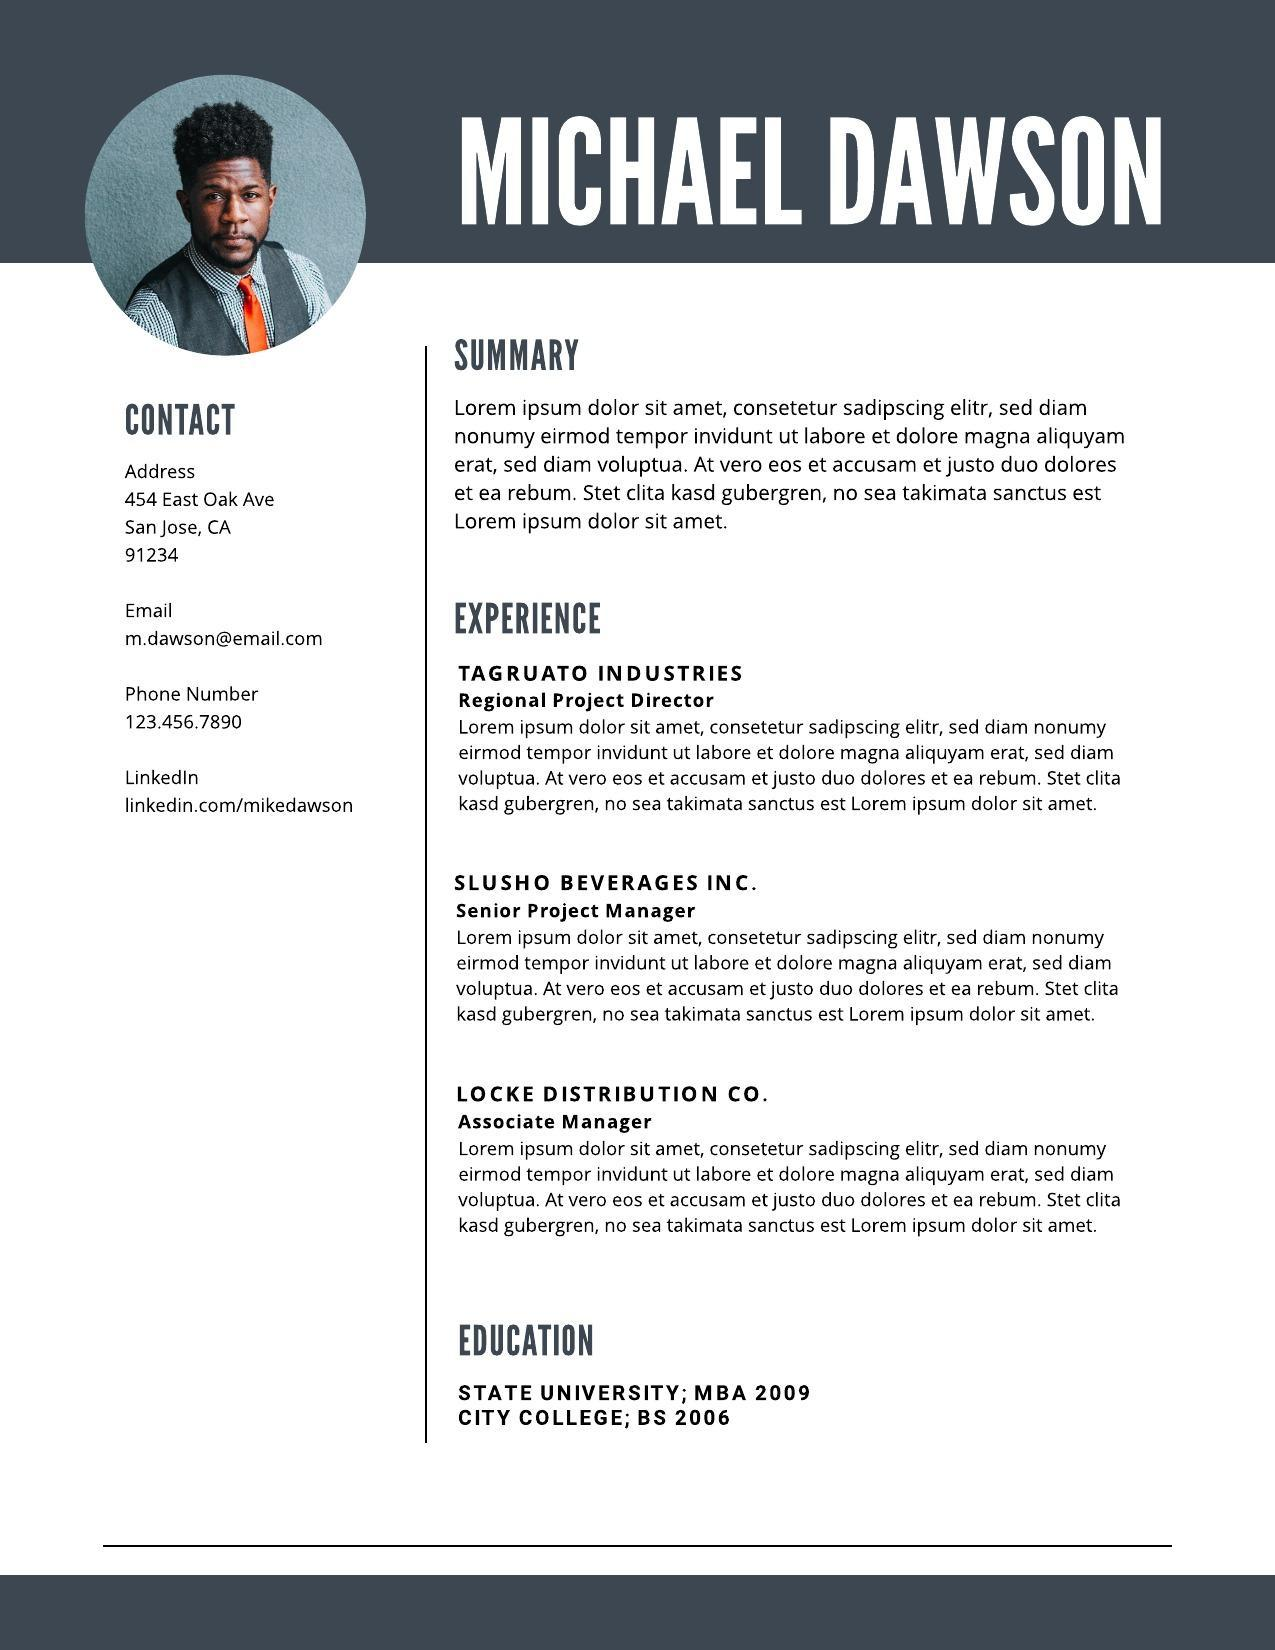 resume examples writing tips for lucidpress contact details on image04 mailbox database Resume Contact Details On Resume